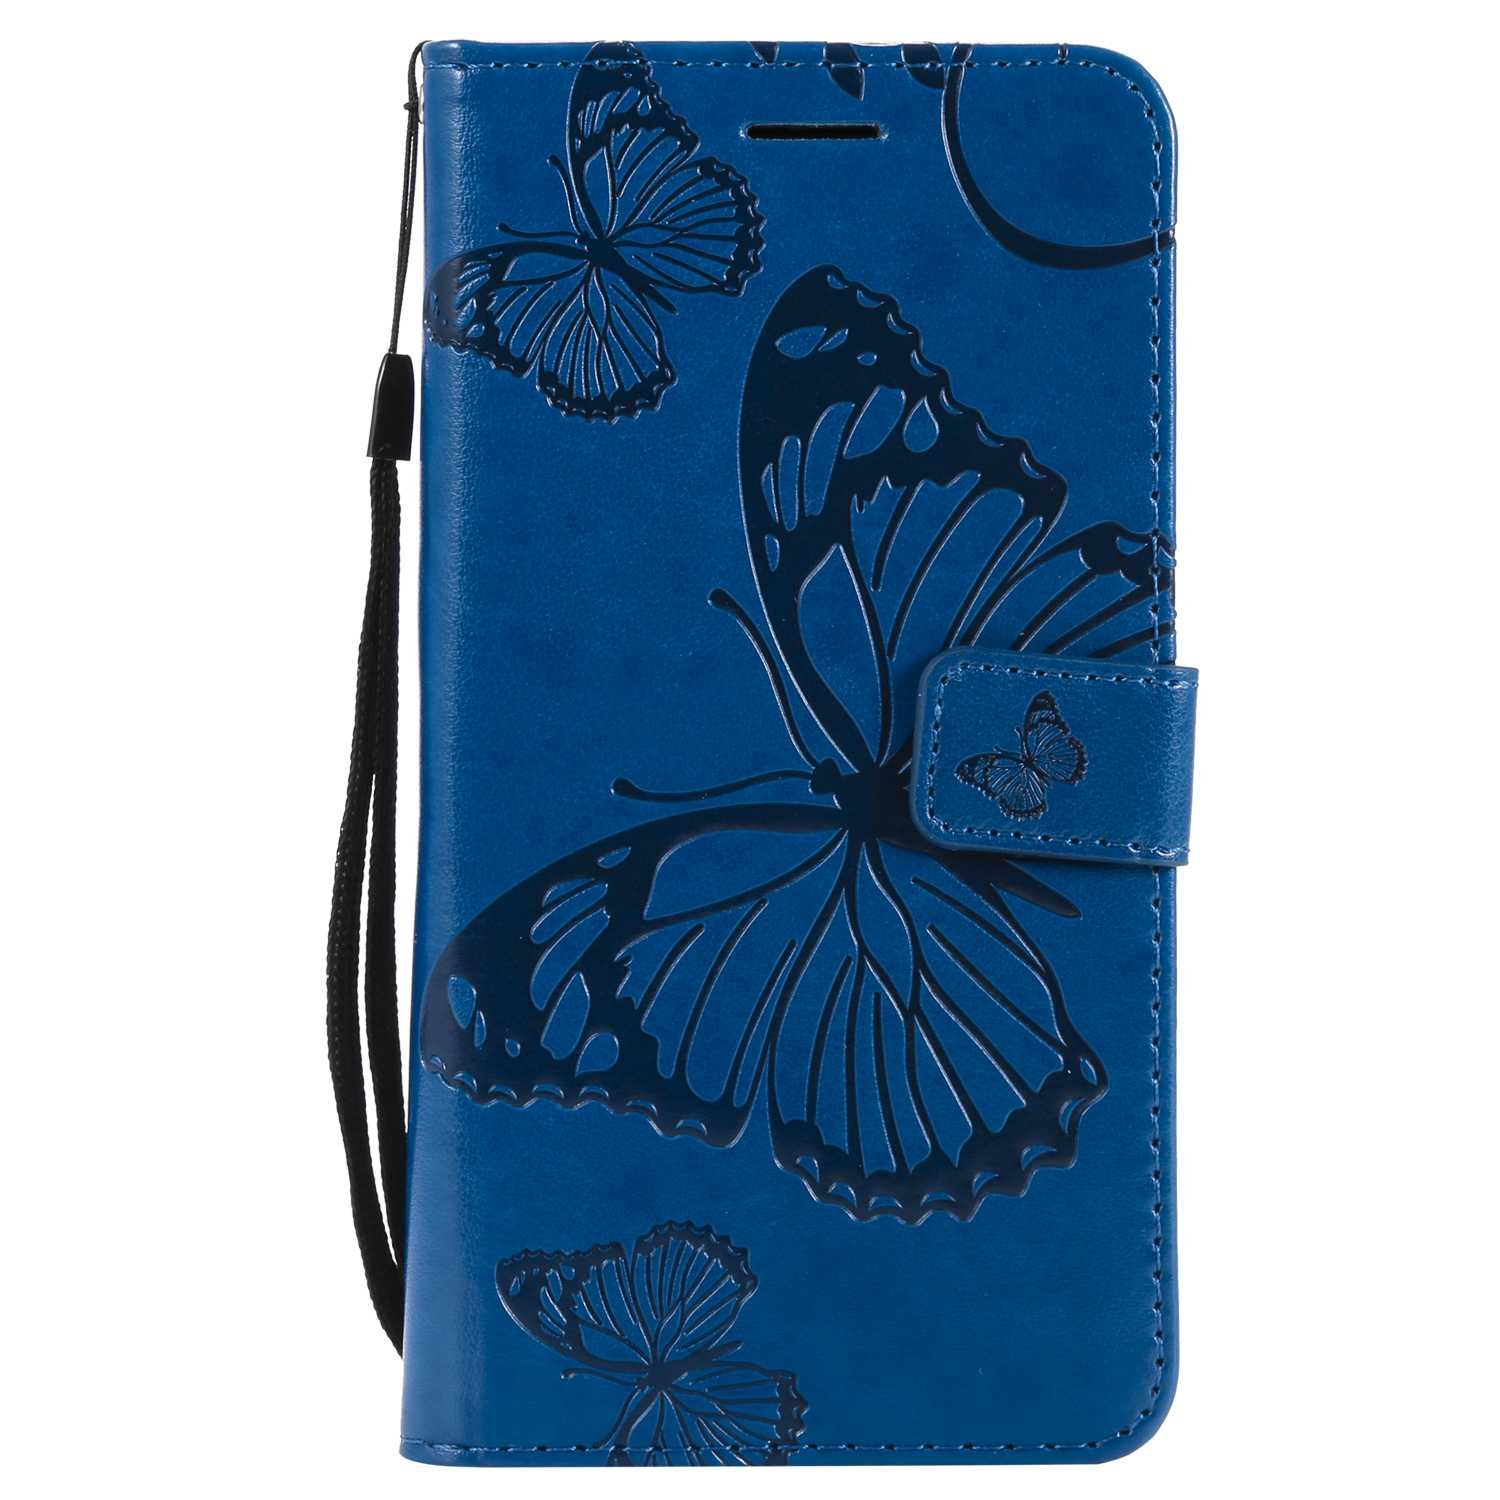 CUSKING Case for Samsung Galaxy J7 2016, Leather Flip Cover Magnetic Wallet Case with Butterfly Embossed Design, Case with Card Holders and Kickstand - Blue